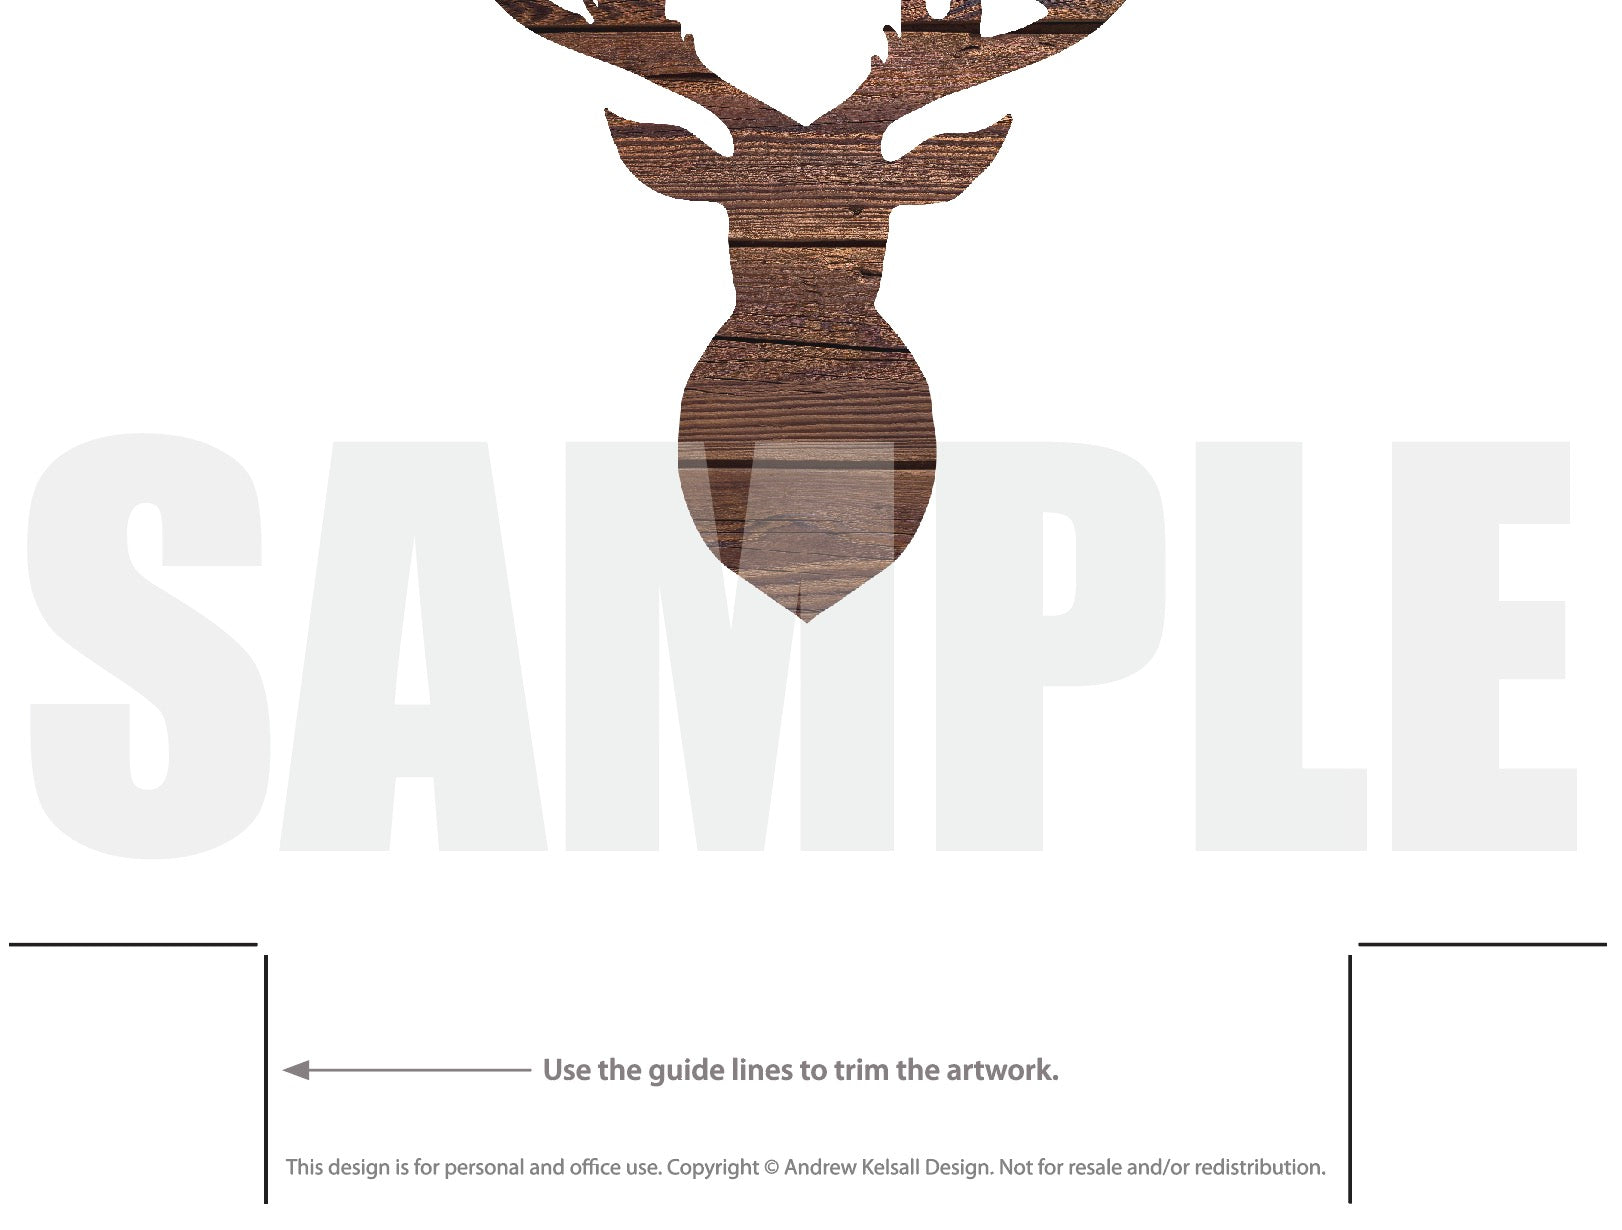 photo regarding Printable Deer Head Silhouette called Deer Brain Silhouette Palm Leaves Printable: Deer Thoughts